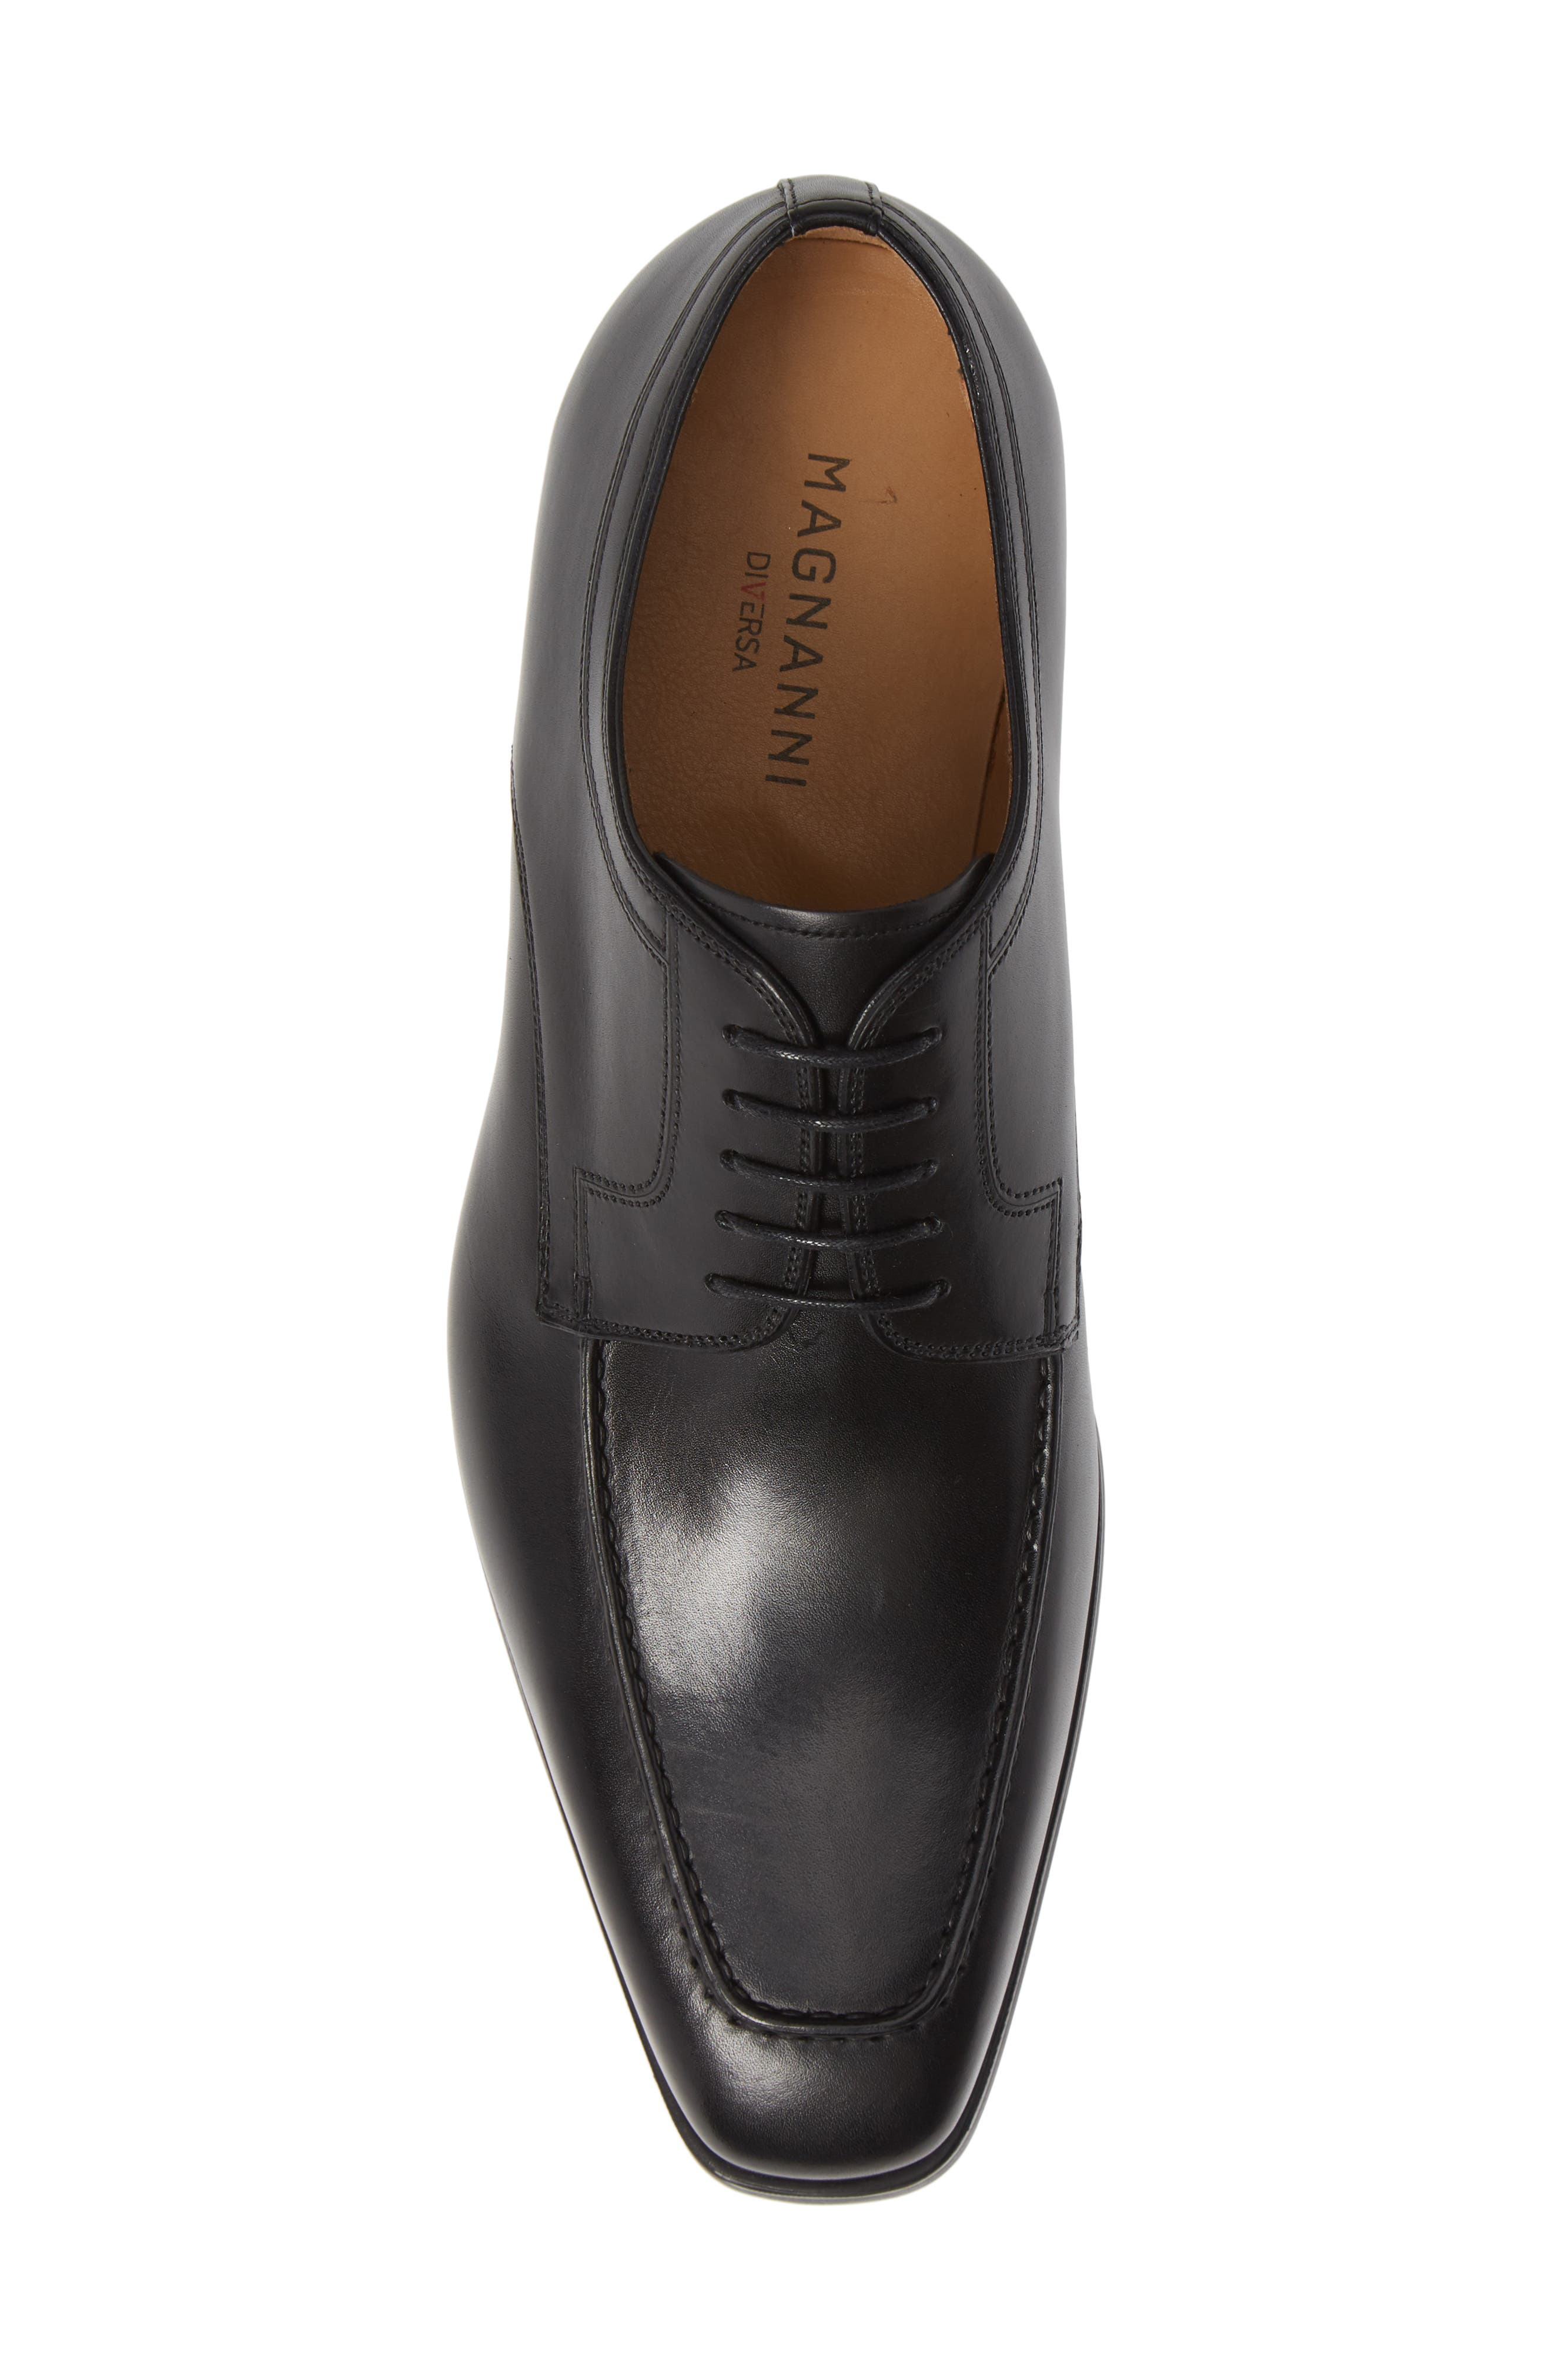 MAGNANNI, Romelo Diversa Apron Toe Derby, Alternate thumbnail 5, color, BLACK LEATHER